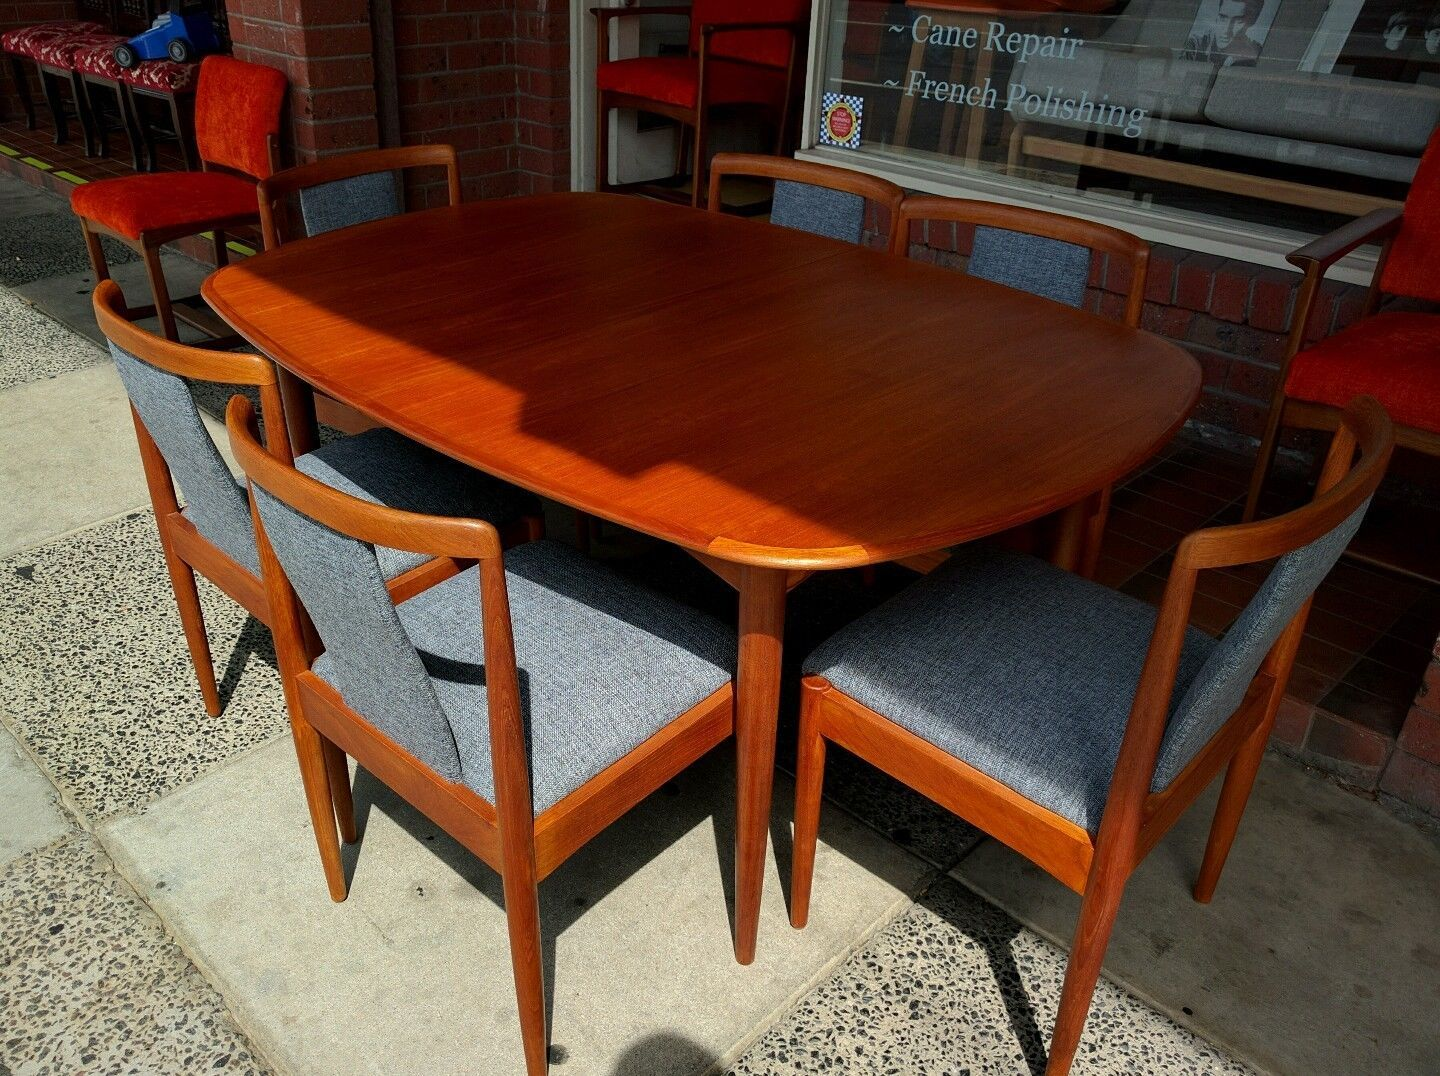 Retro 1960u0027s Parker Dining Table + 6 Chairs Restorered And Recovered In  Home U0026 Garden,